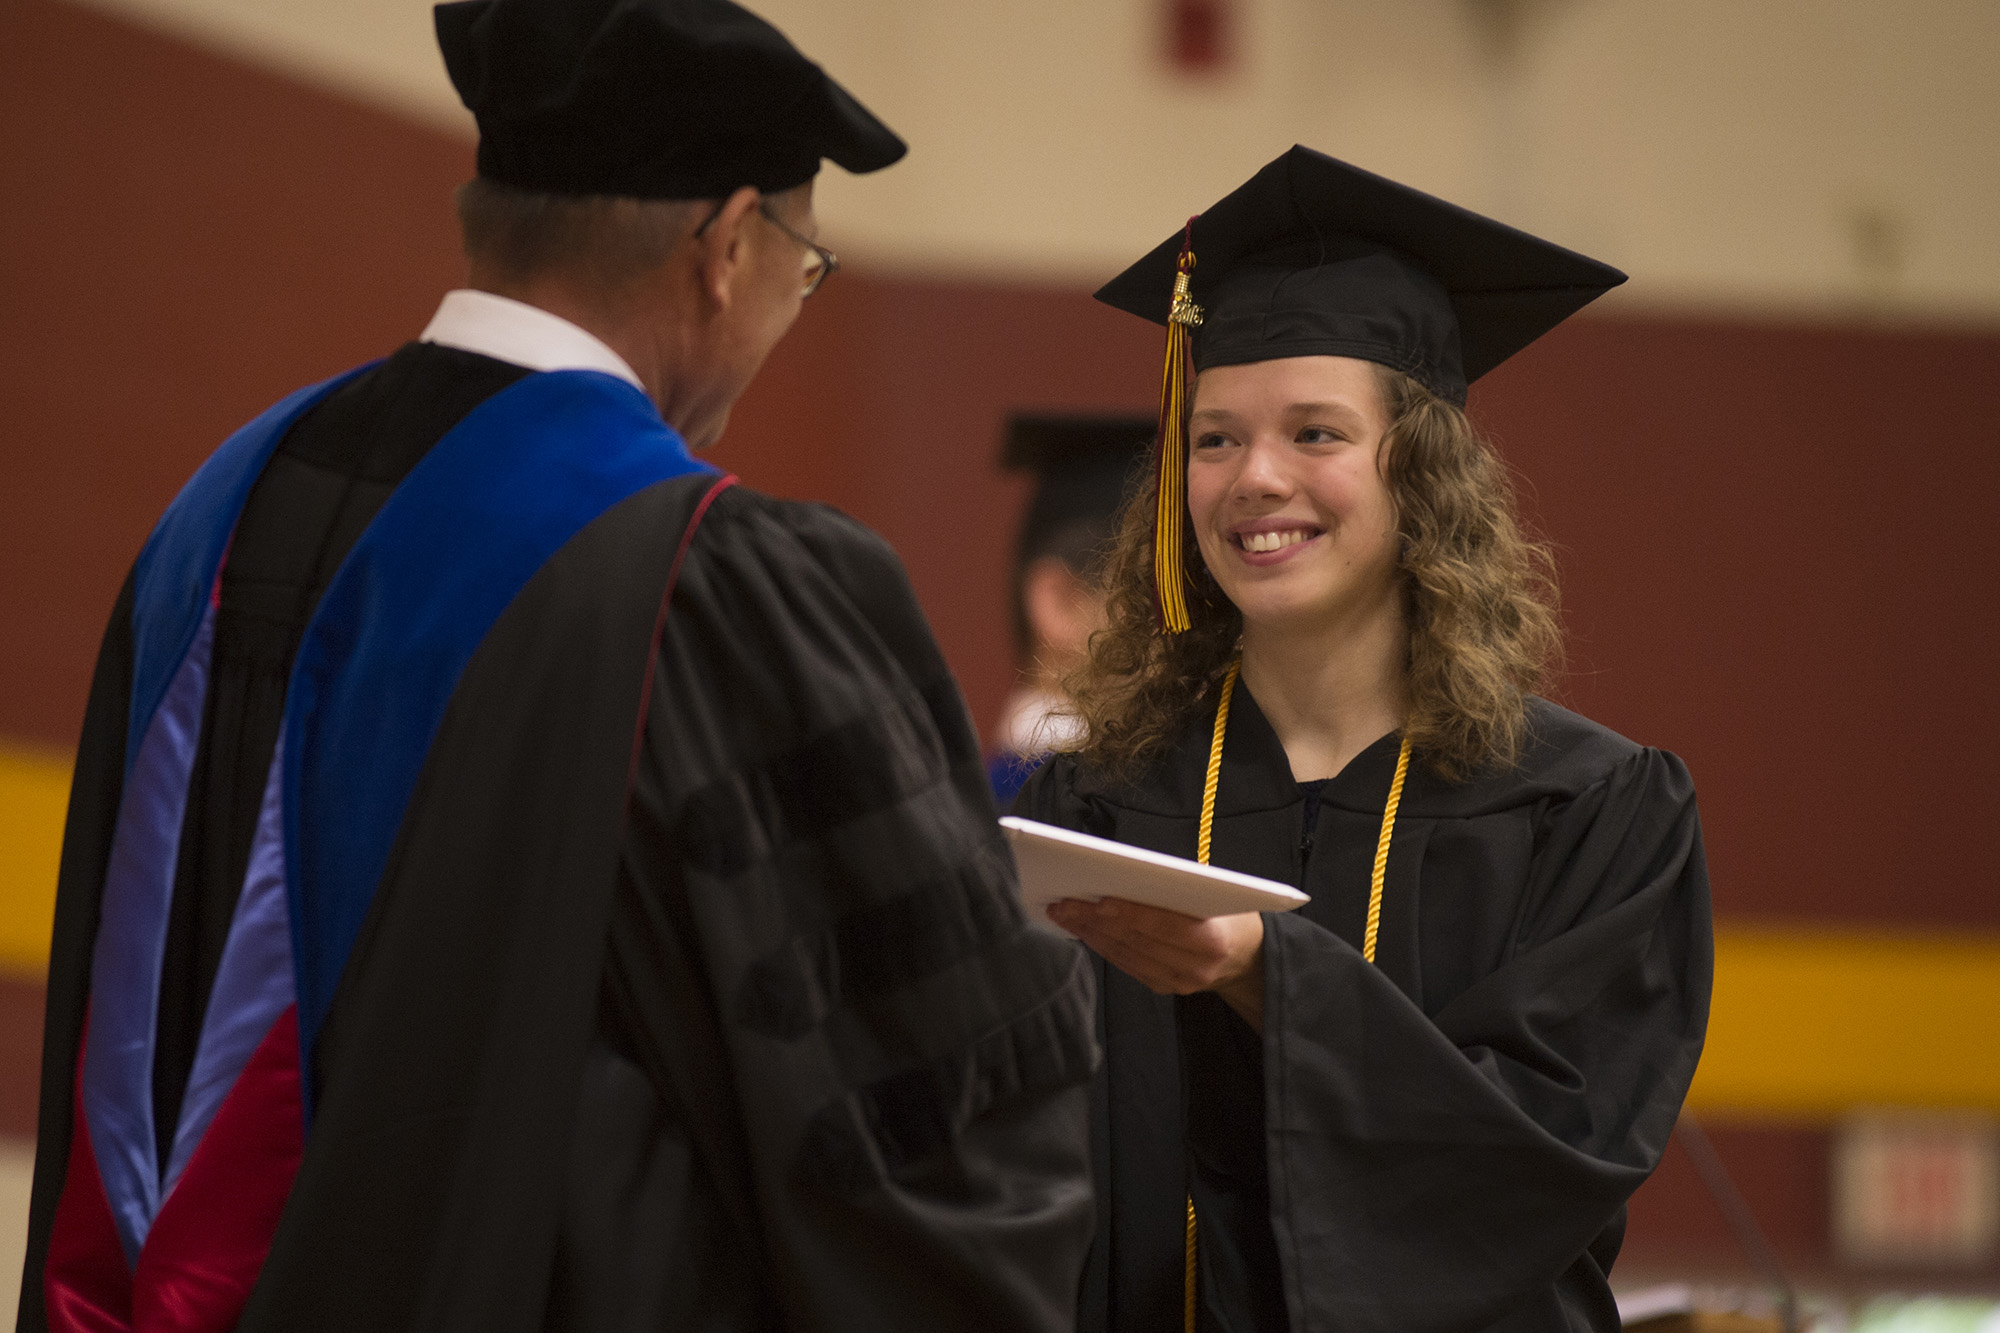 Shelby Miller '16 (Archbold, Ohio) receives her diploma from President Howard Keim.